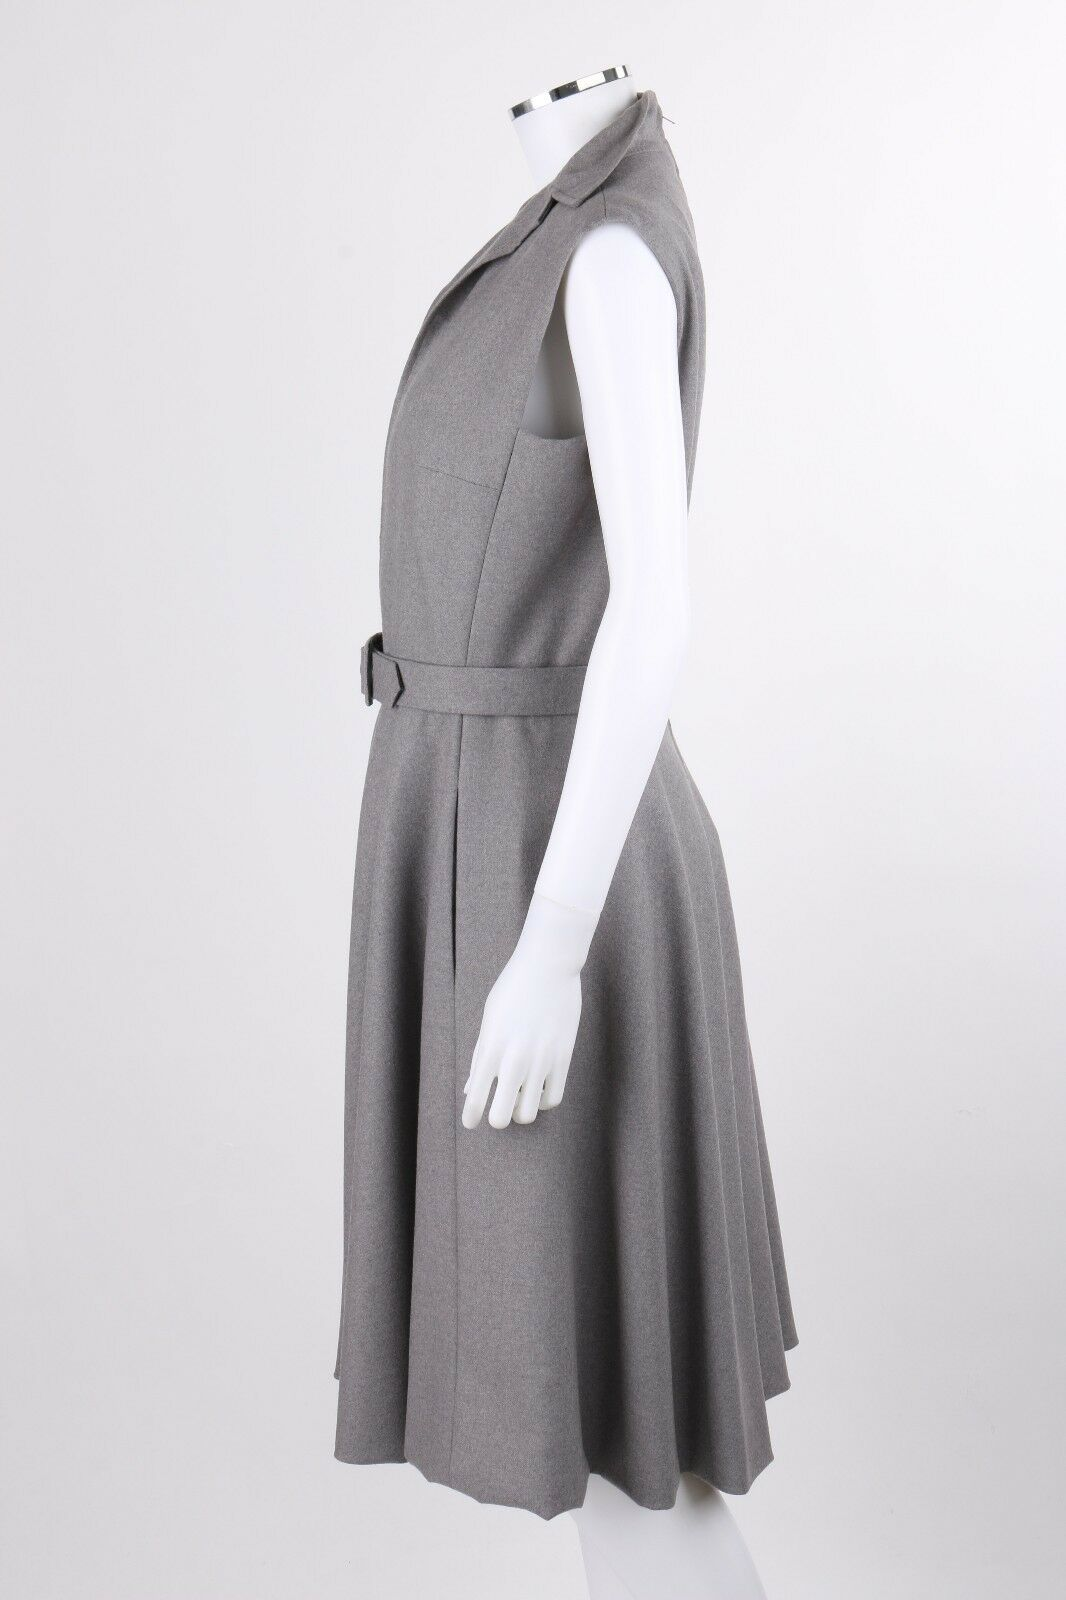 PAULINE TRIGERE c.1980's Gray Wool Extended Shoul… - image 5